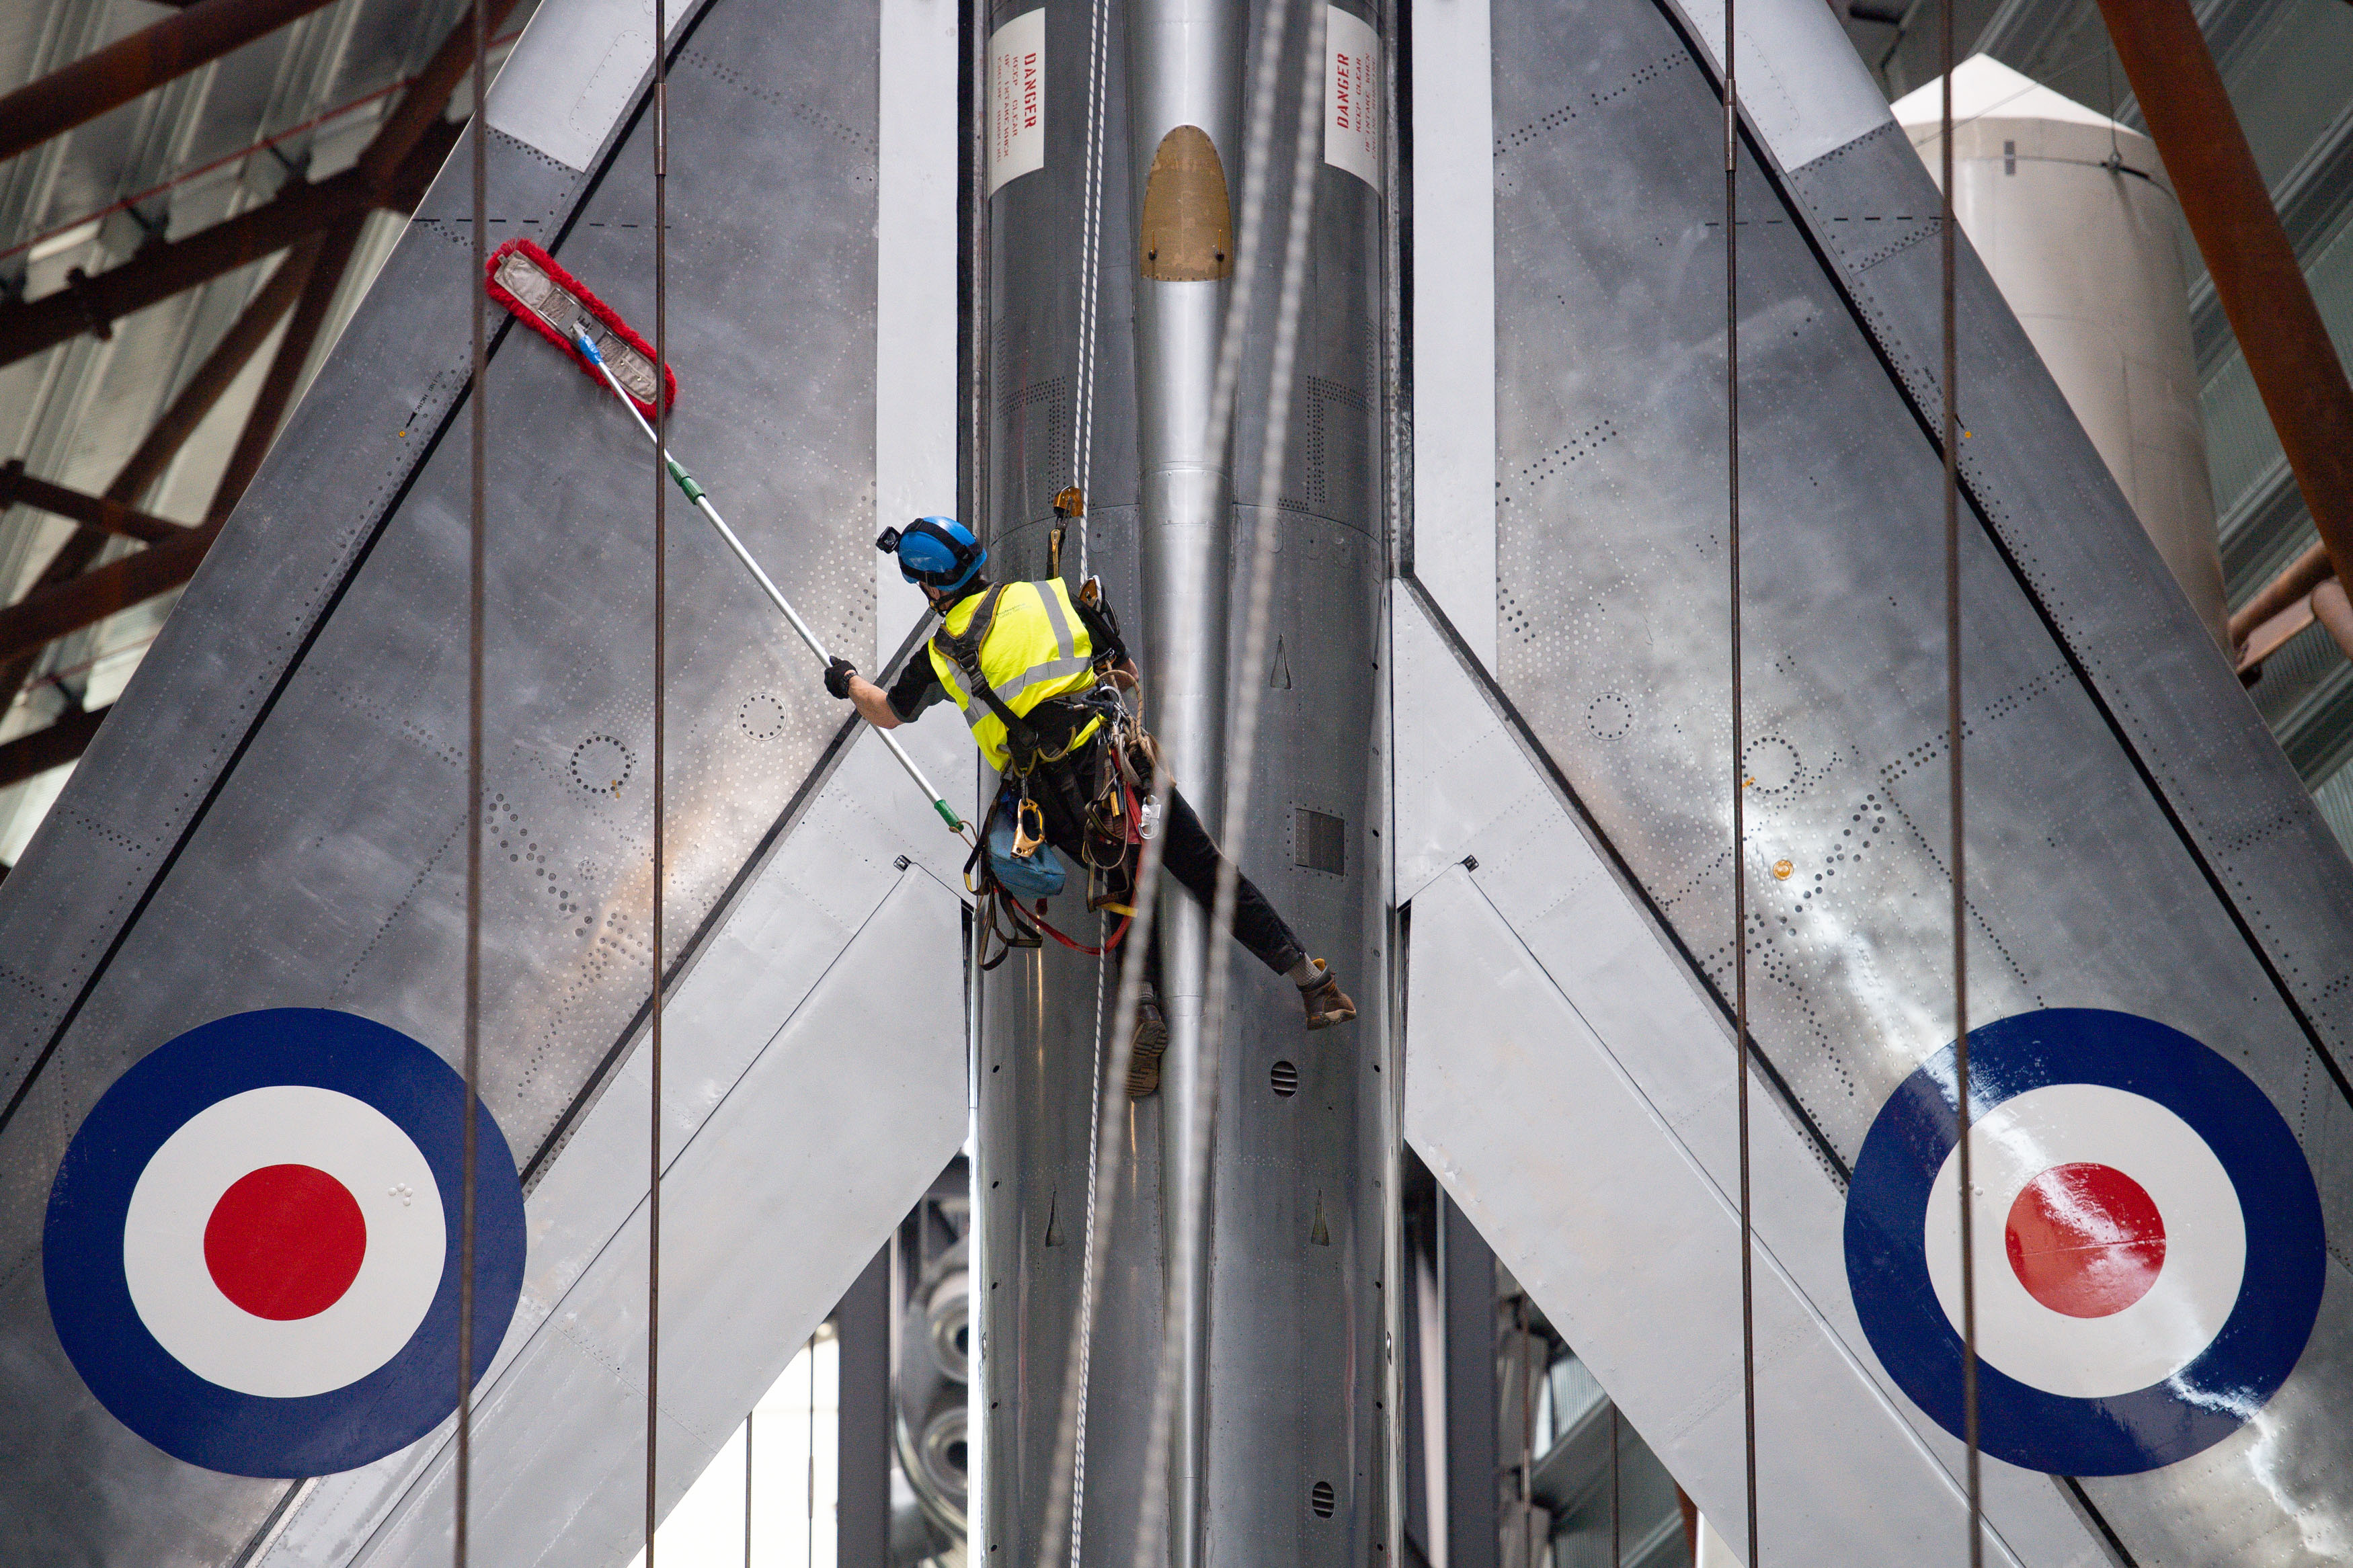 <p>Specialist operators at the Royal Air Force Museum Cosford, near Telford, Shropshire, clean the Electric Lightning aircraft displayed within the museum's National Cold War Exhibition, during annual high-level aircraft cleaning and maintenance. Picture date: Thursday April 29, 2021.</p>